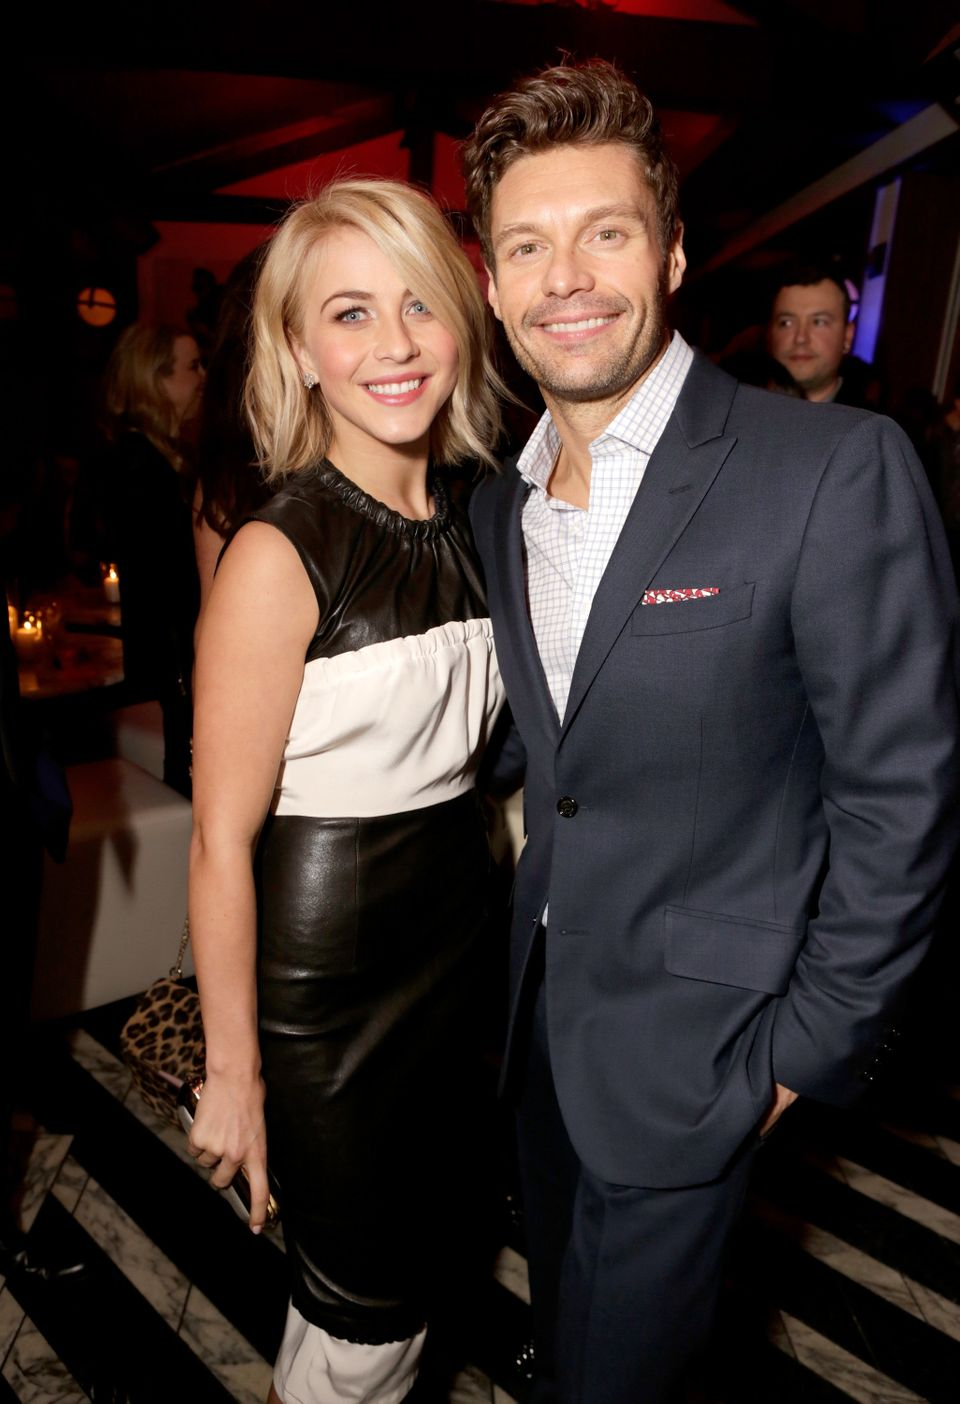 "<a href=""https://www.huffpost.com/entry/ryan-seacrest-julianne-hough-split_n_2890436"" target=""_blank"">Things were over in Jun"